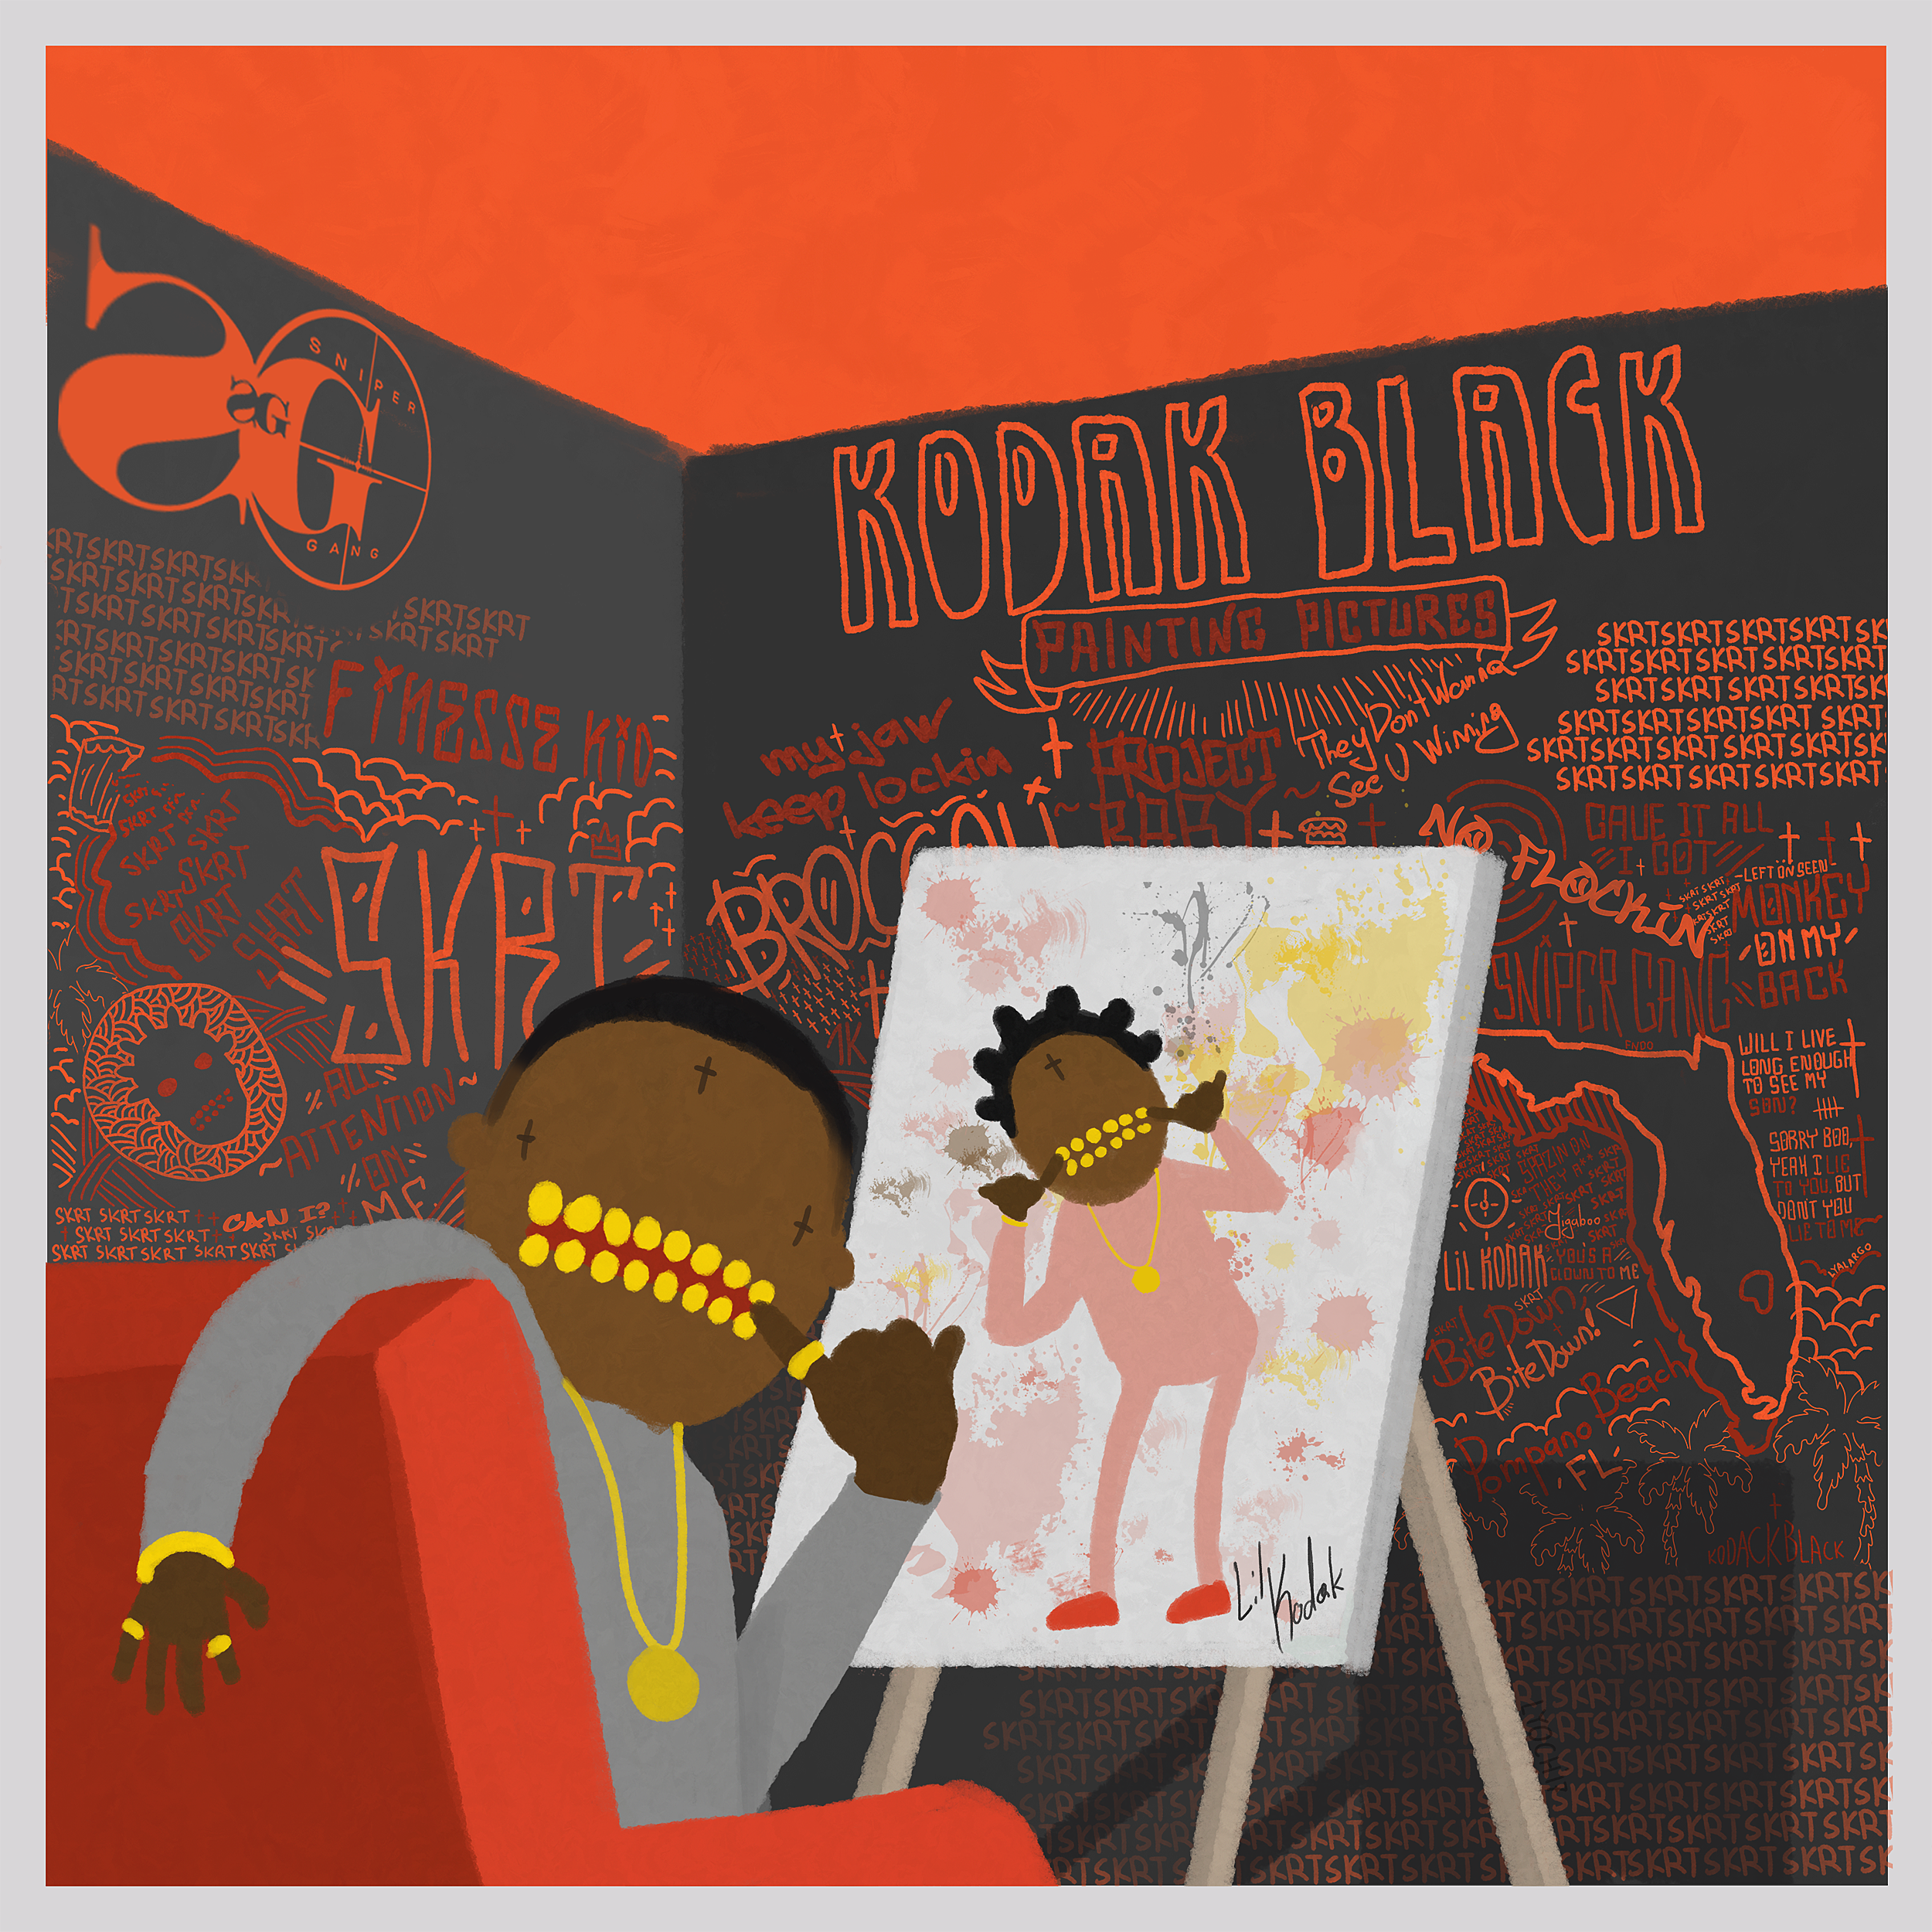 Kodak Black I Be Painting Pictures But I Picture Paint